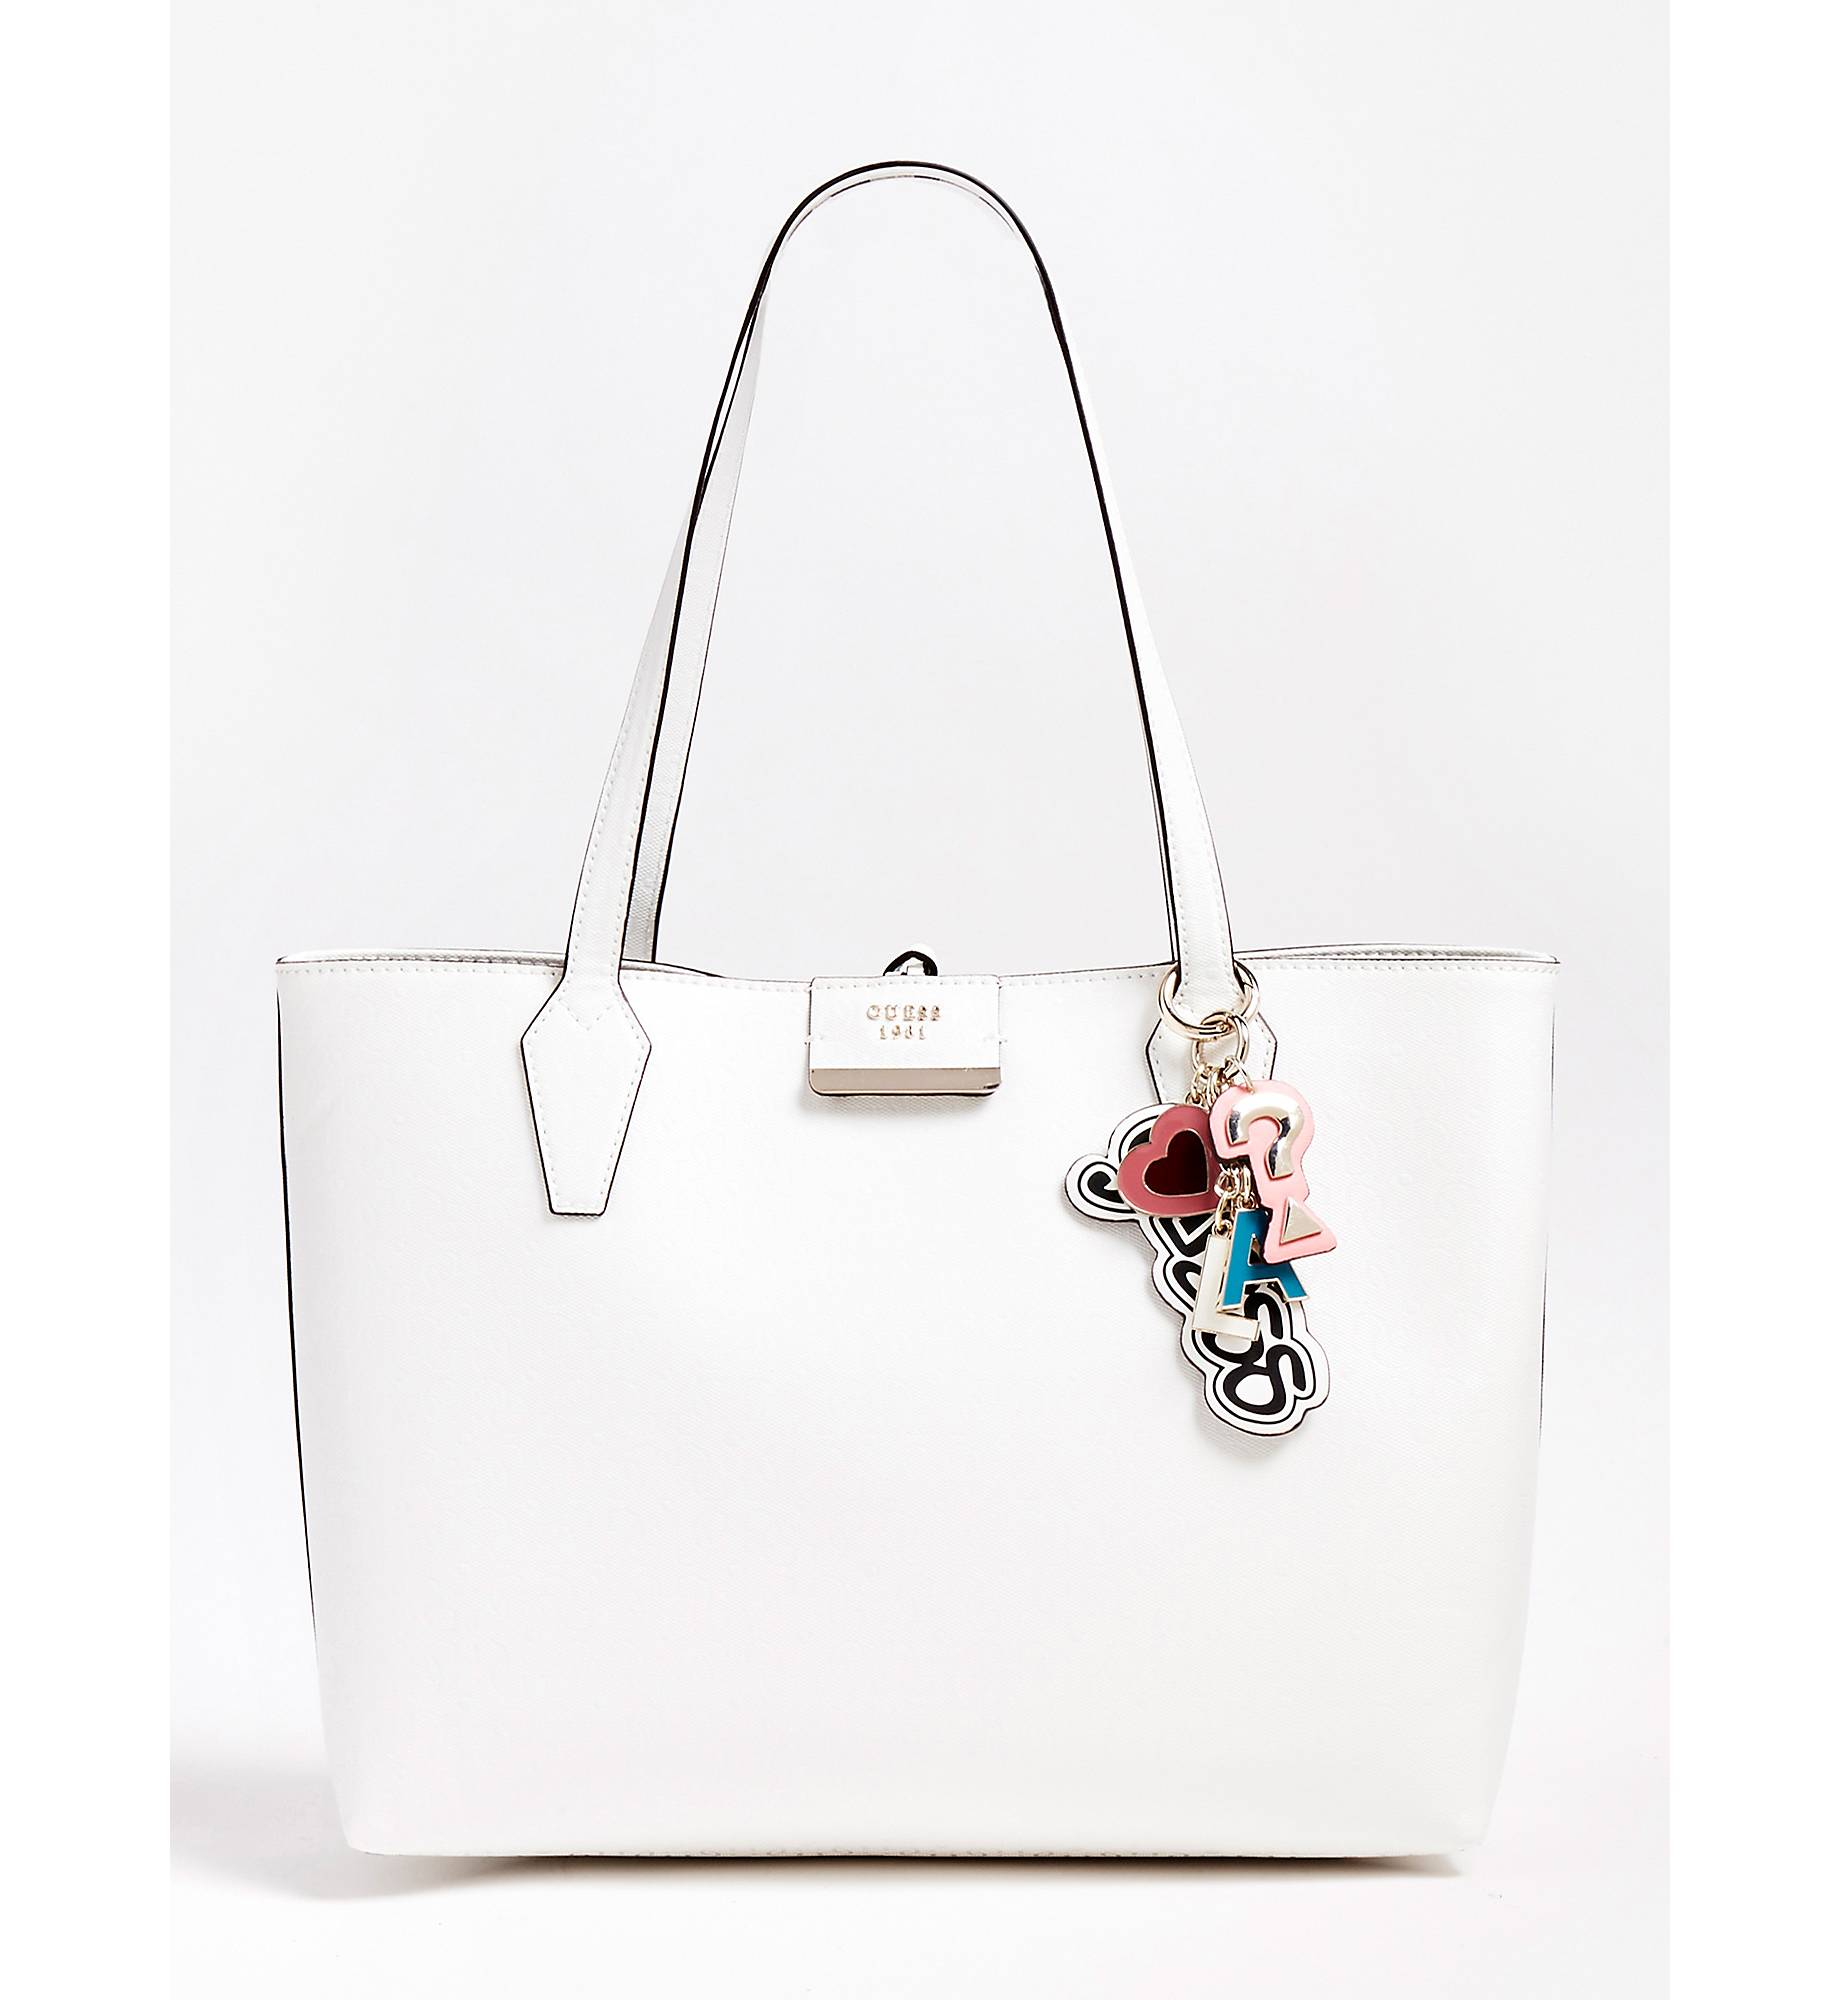 Borsa GUESS shopper TABBI charm | Sara p. shoes